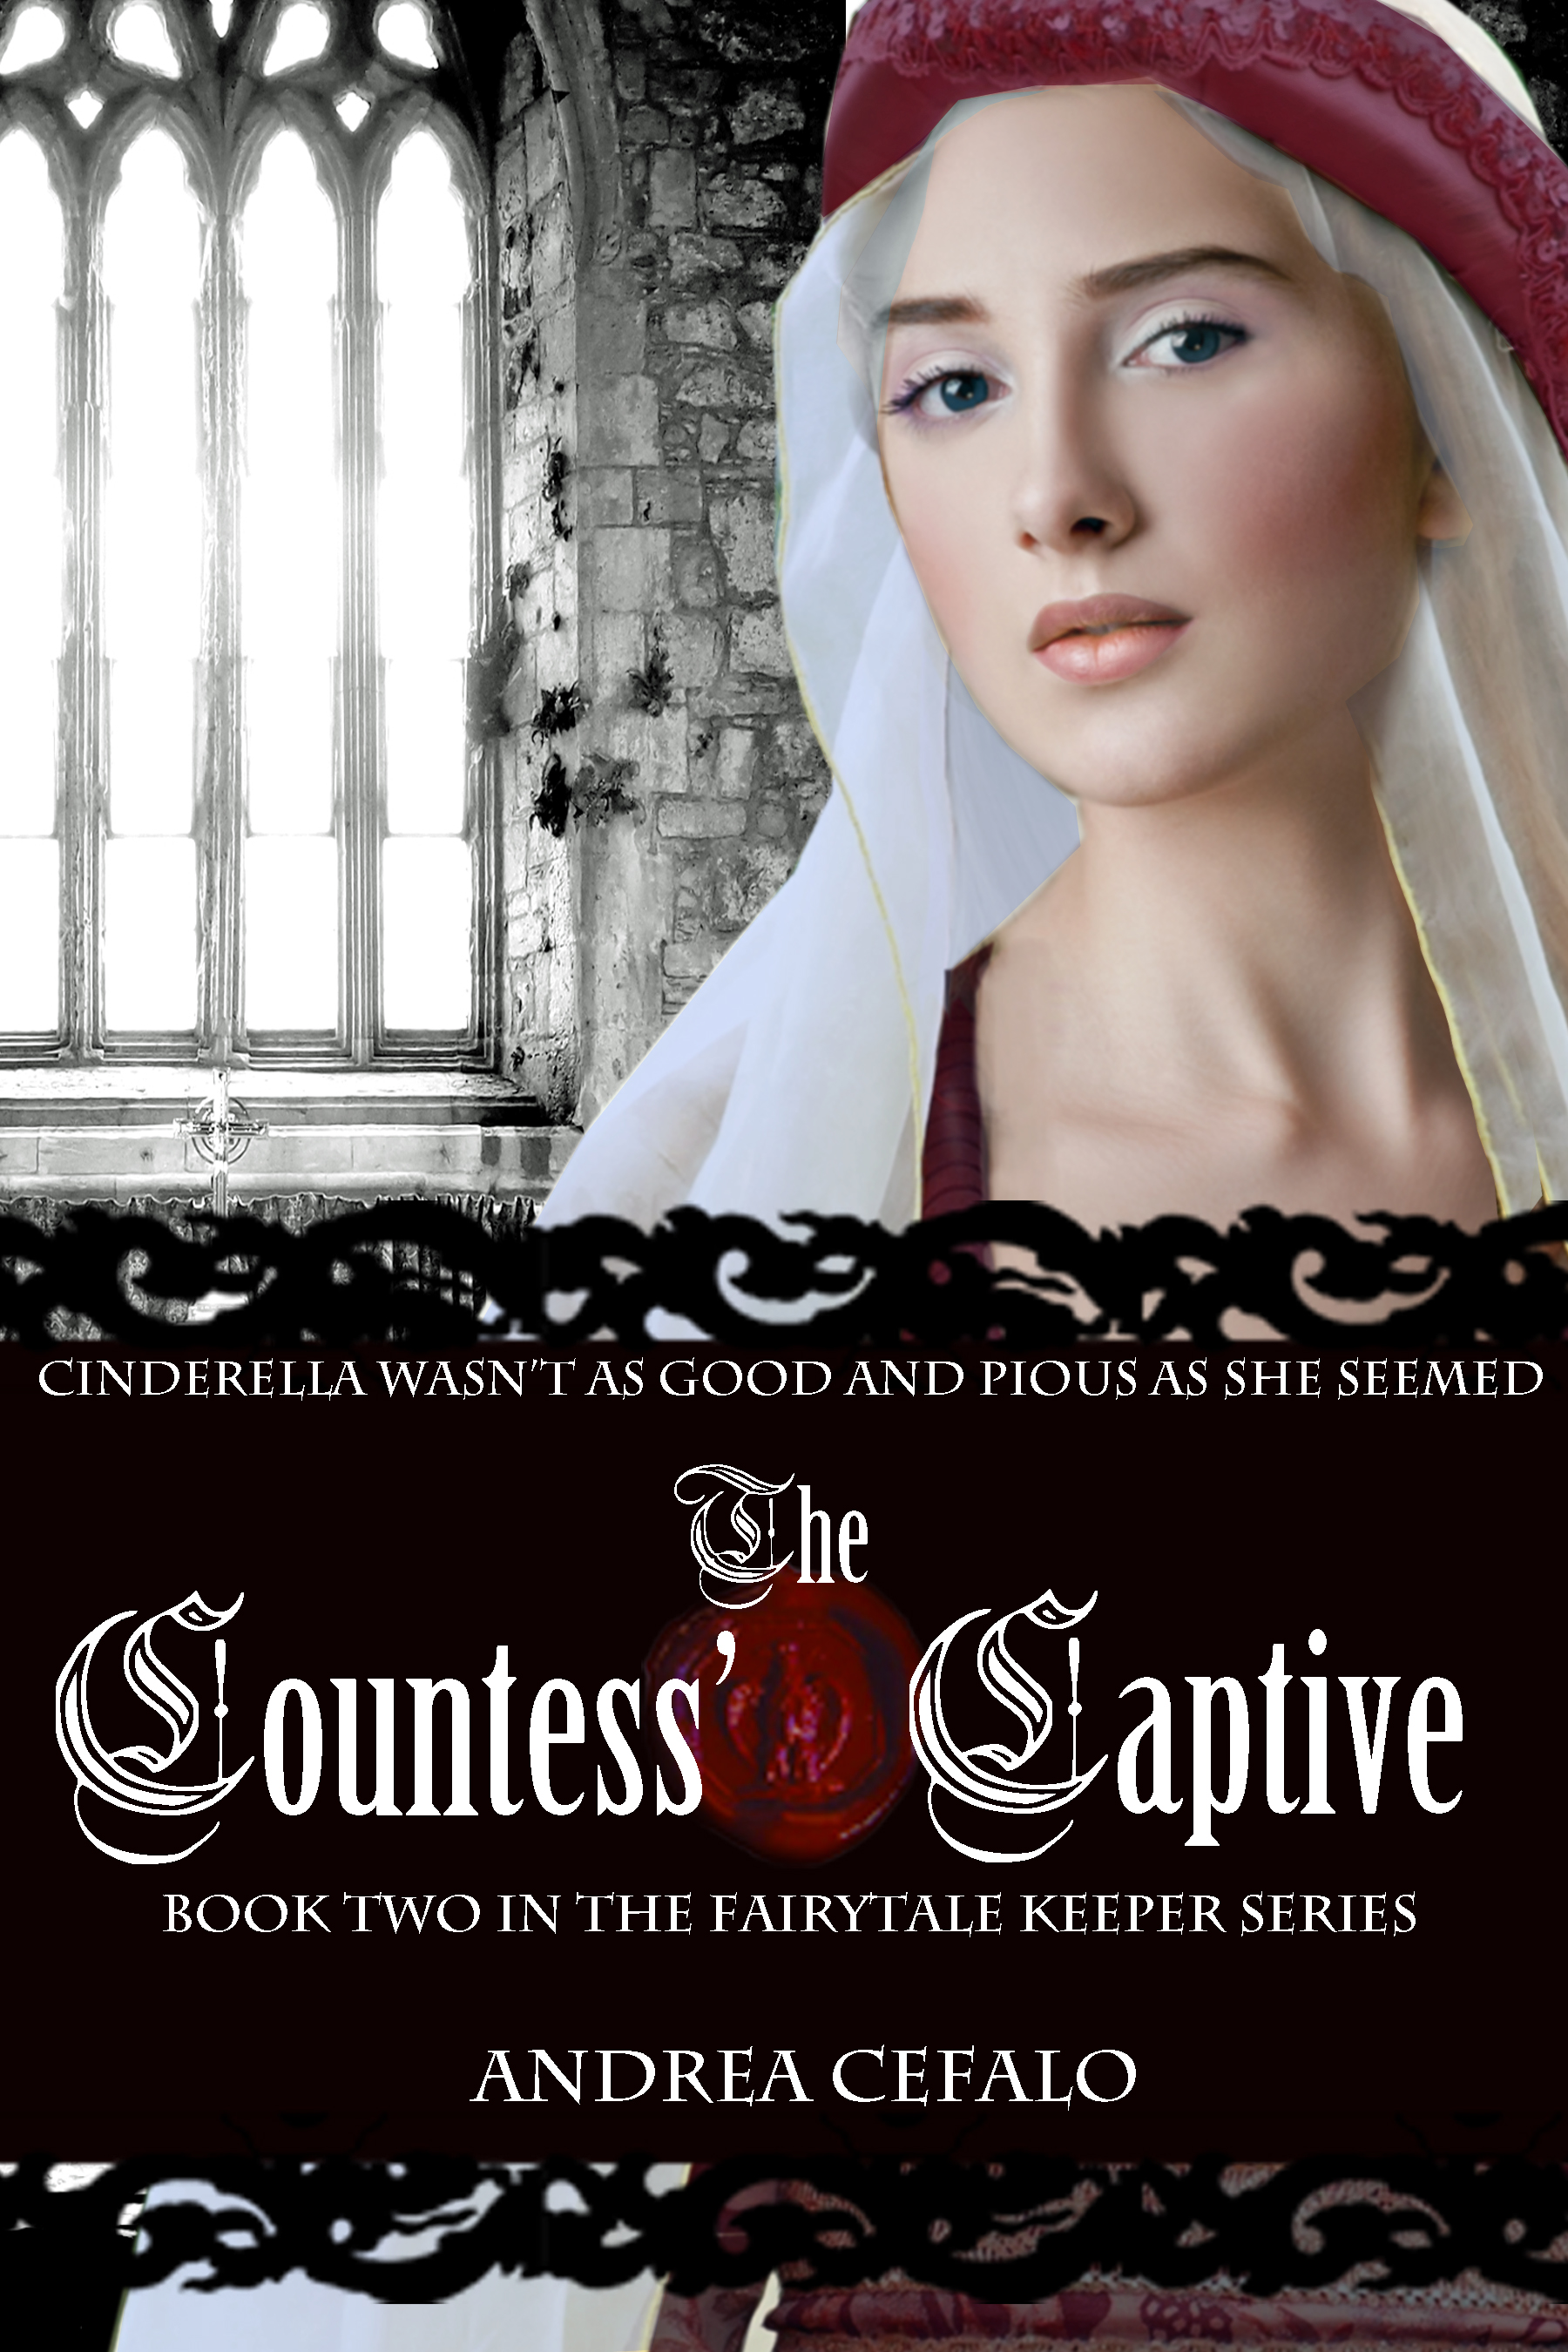 03_The Countess' Captive_Cover